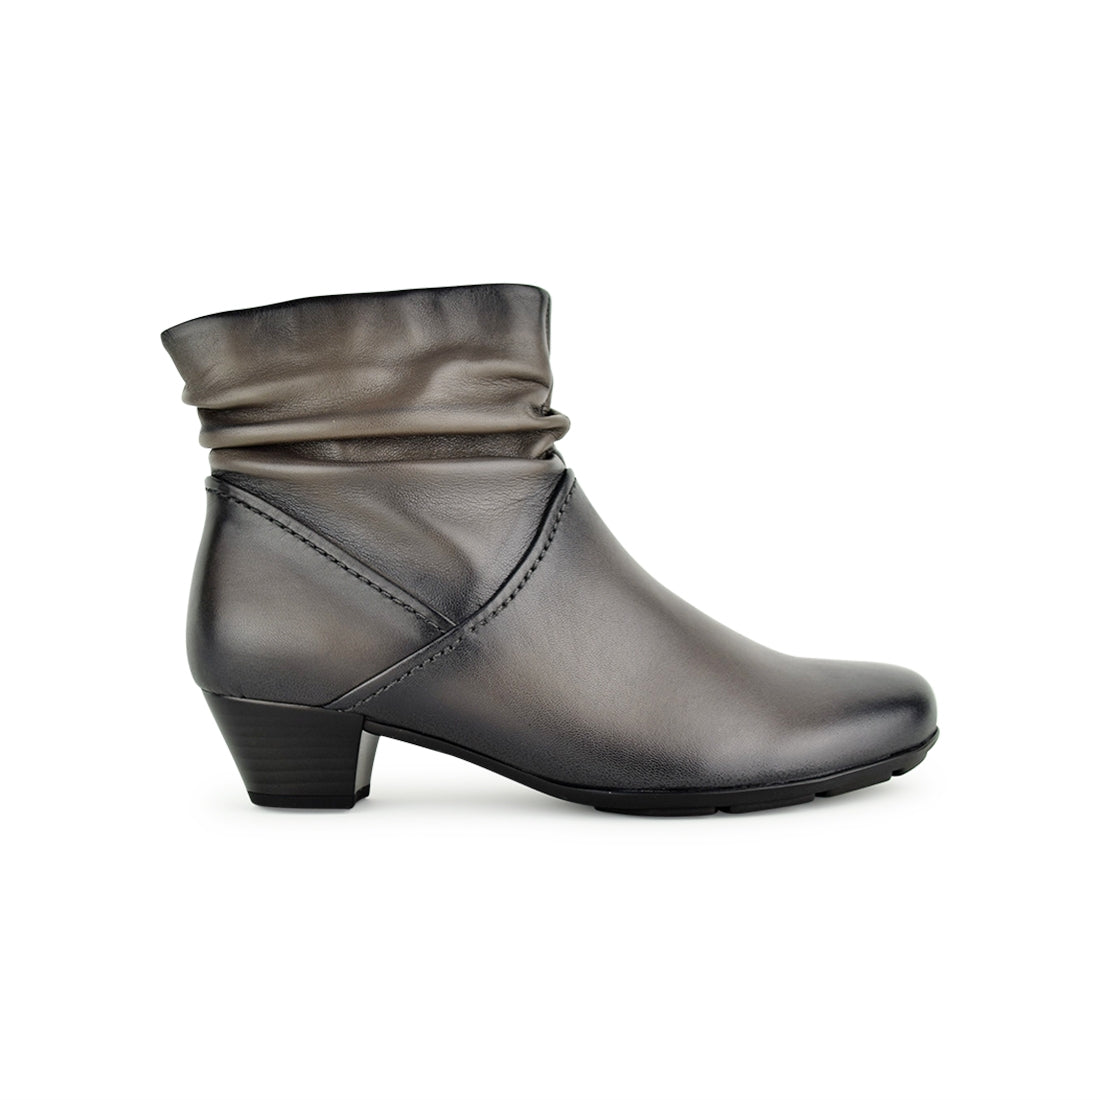 TOSKA - Gabor Ankle Boots Grey